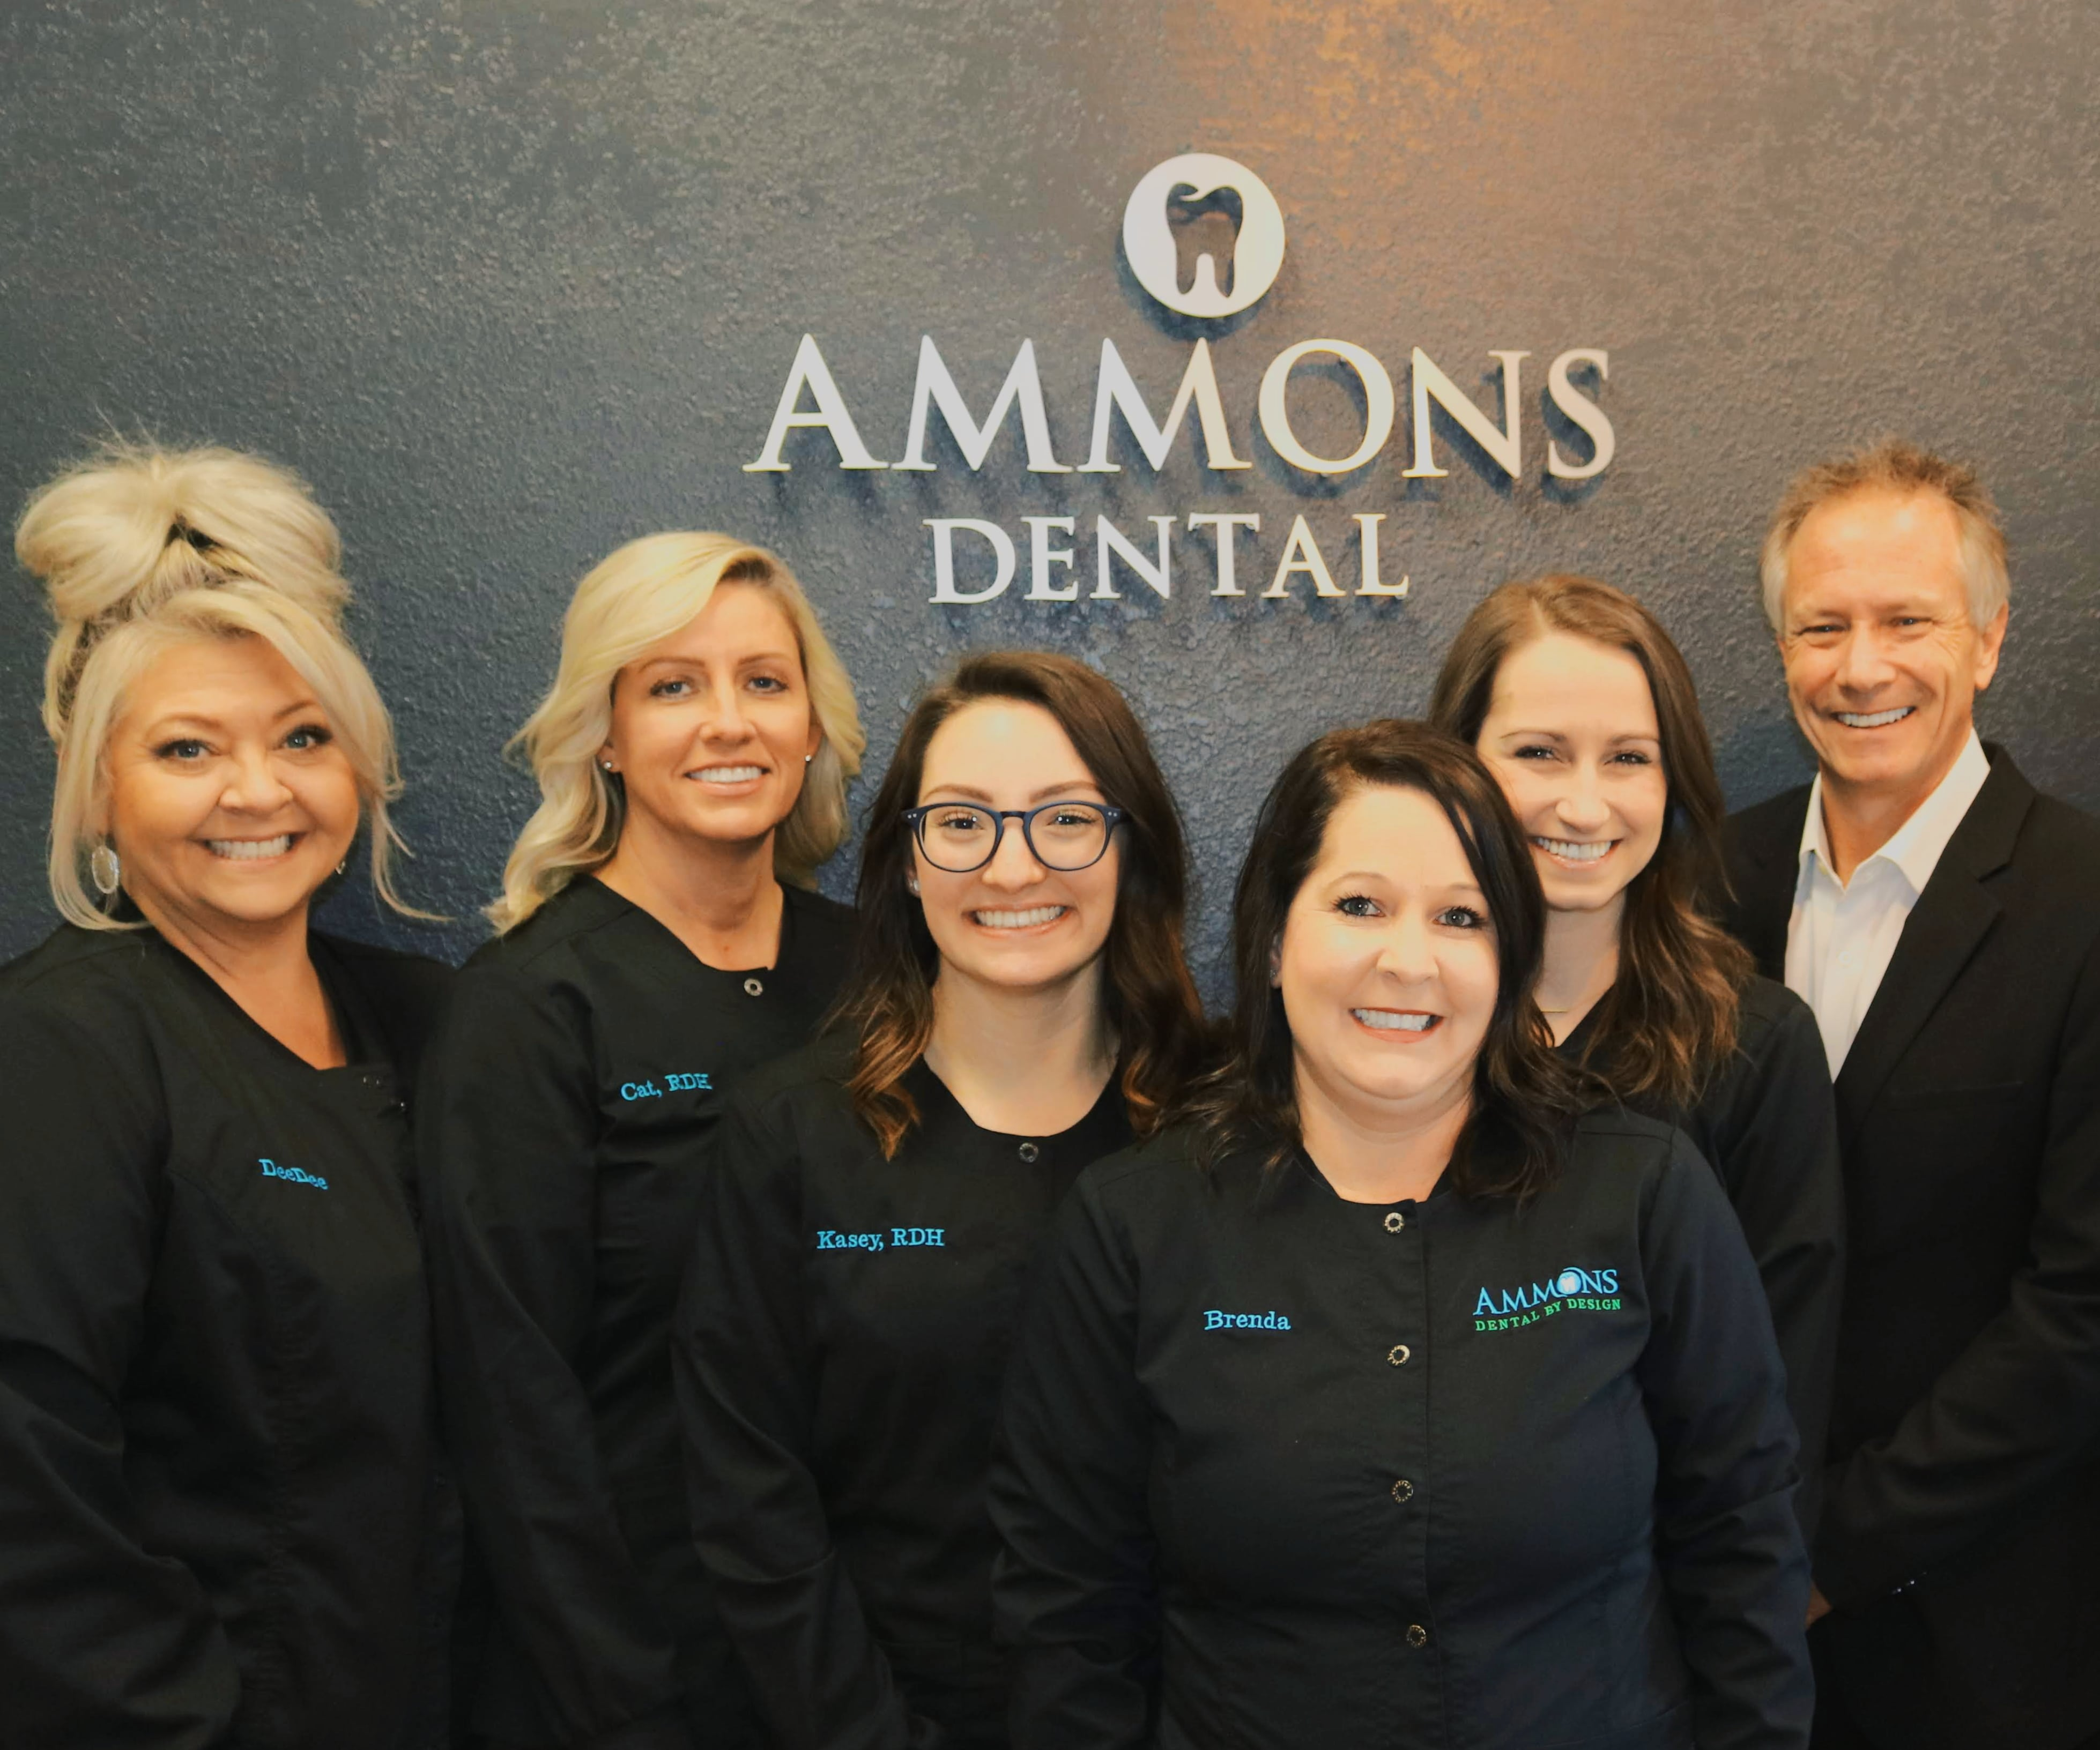 Ammons Dental by Design Summerville team